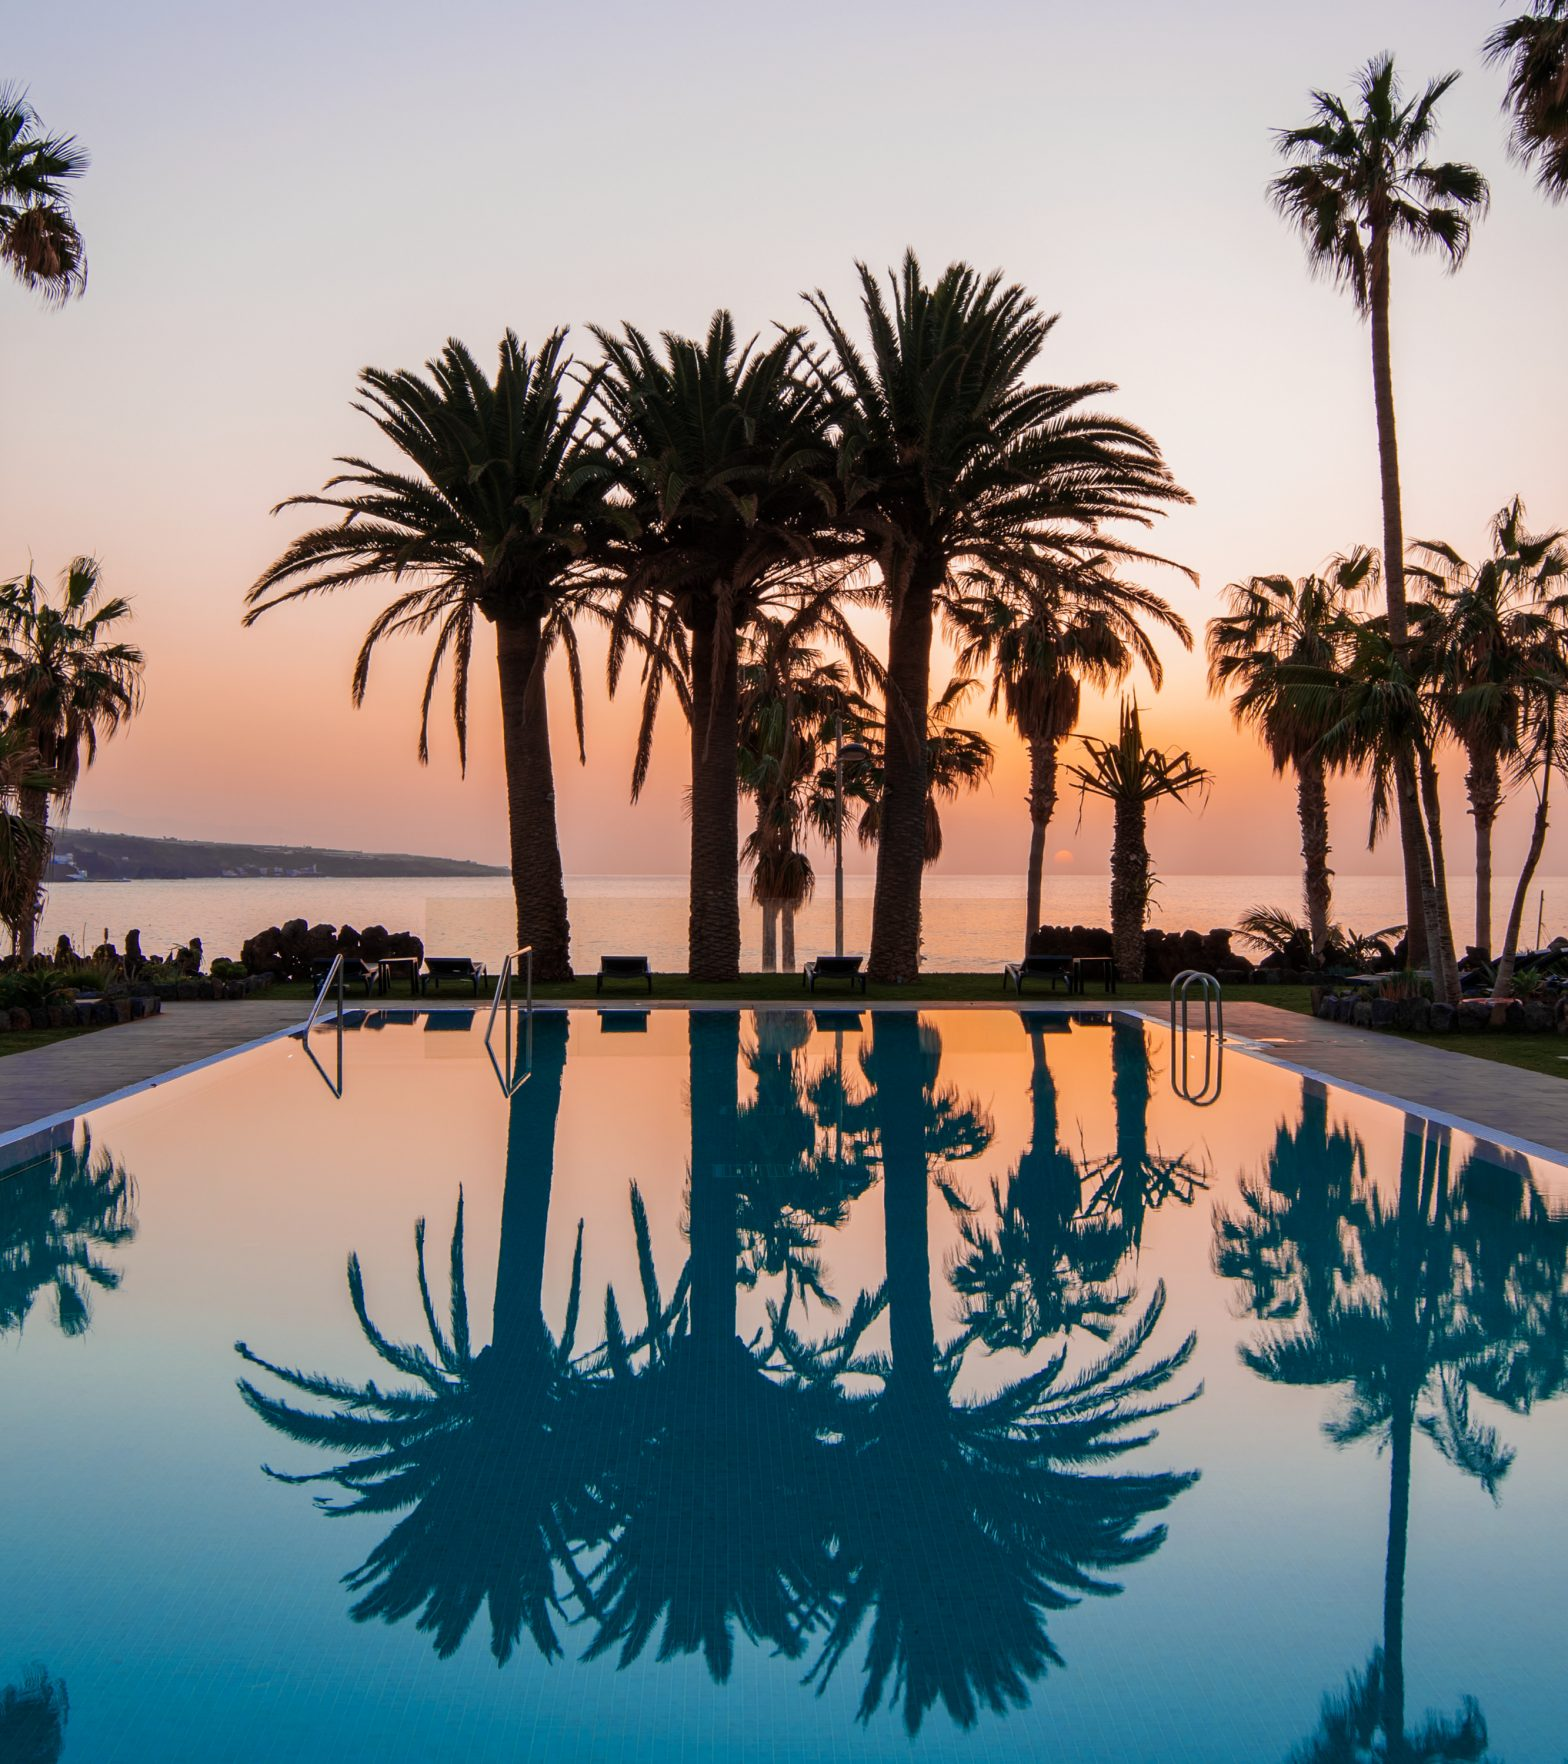 OCEANO_Pool_Teideblick_Sunset_MAXIM